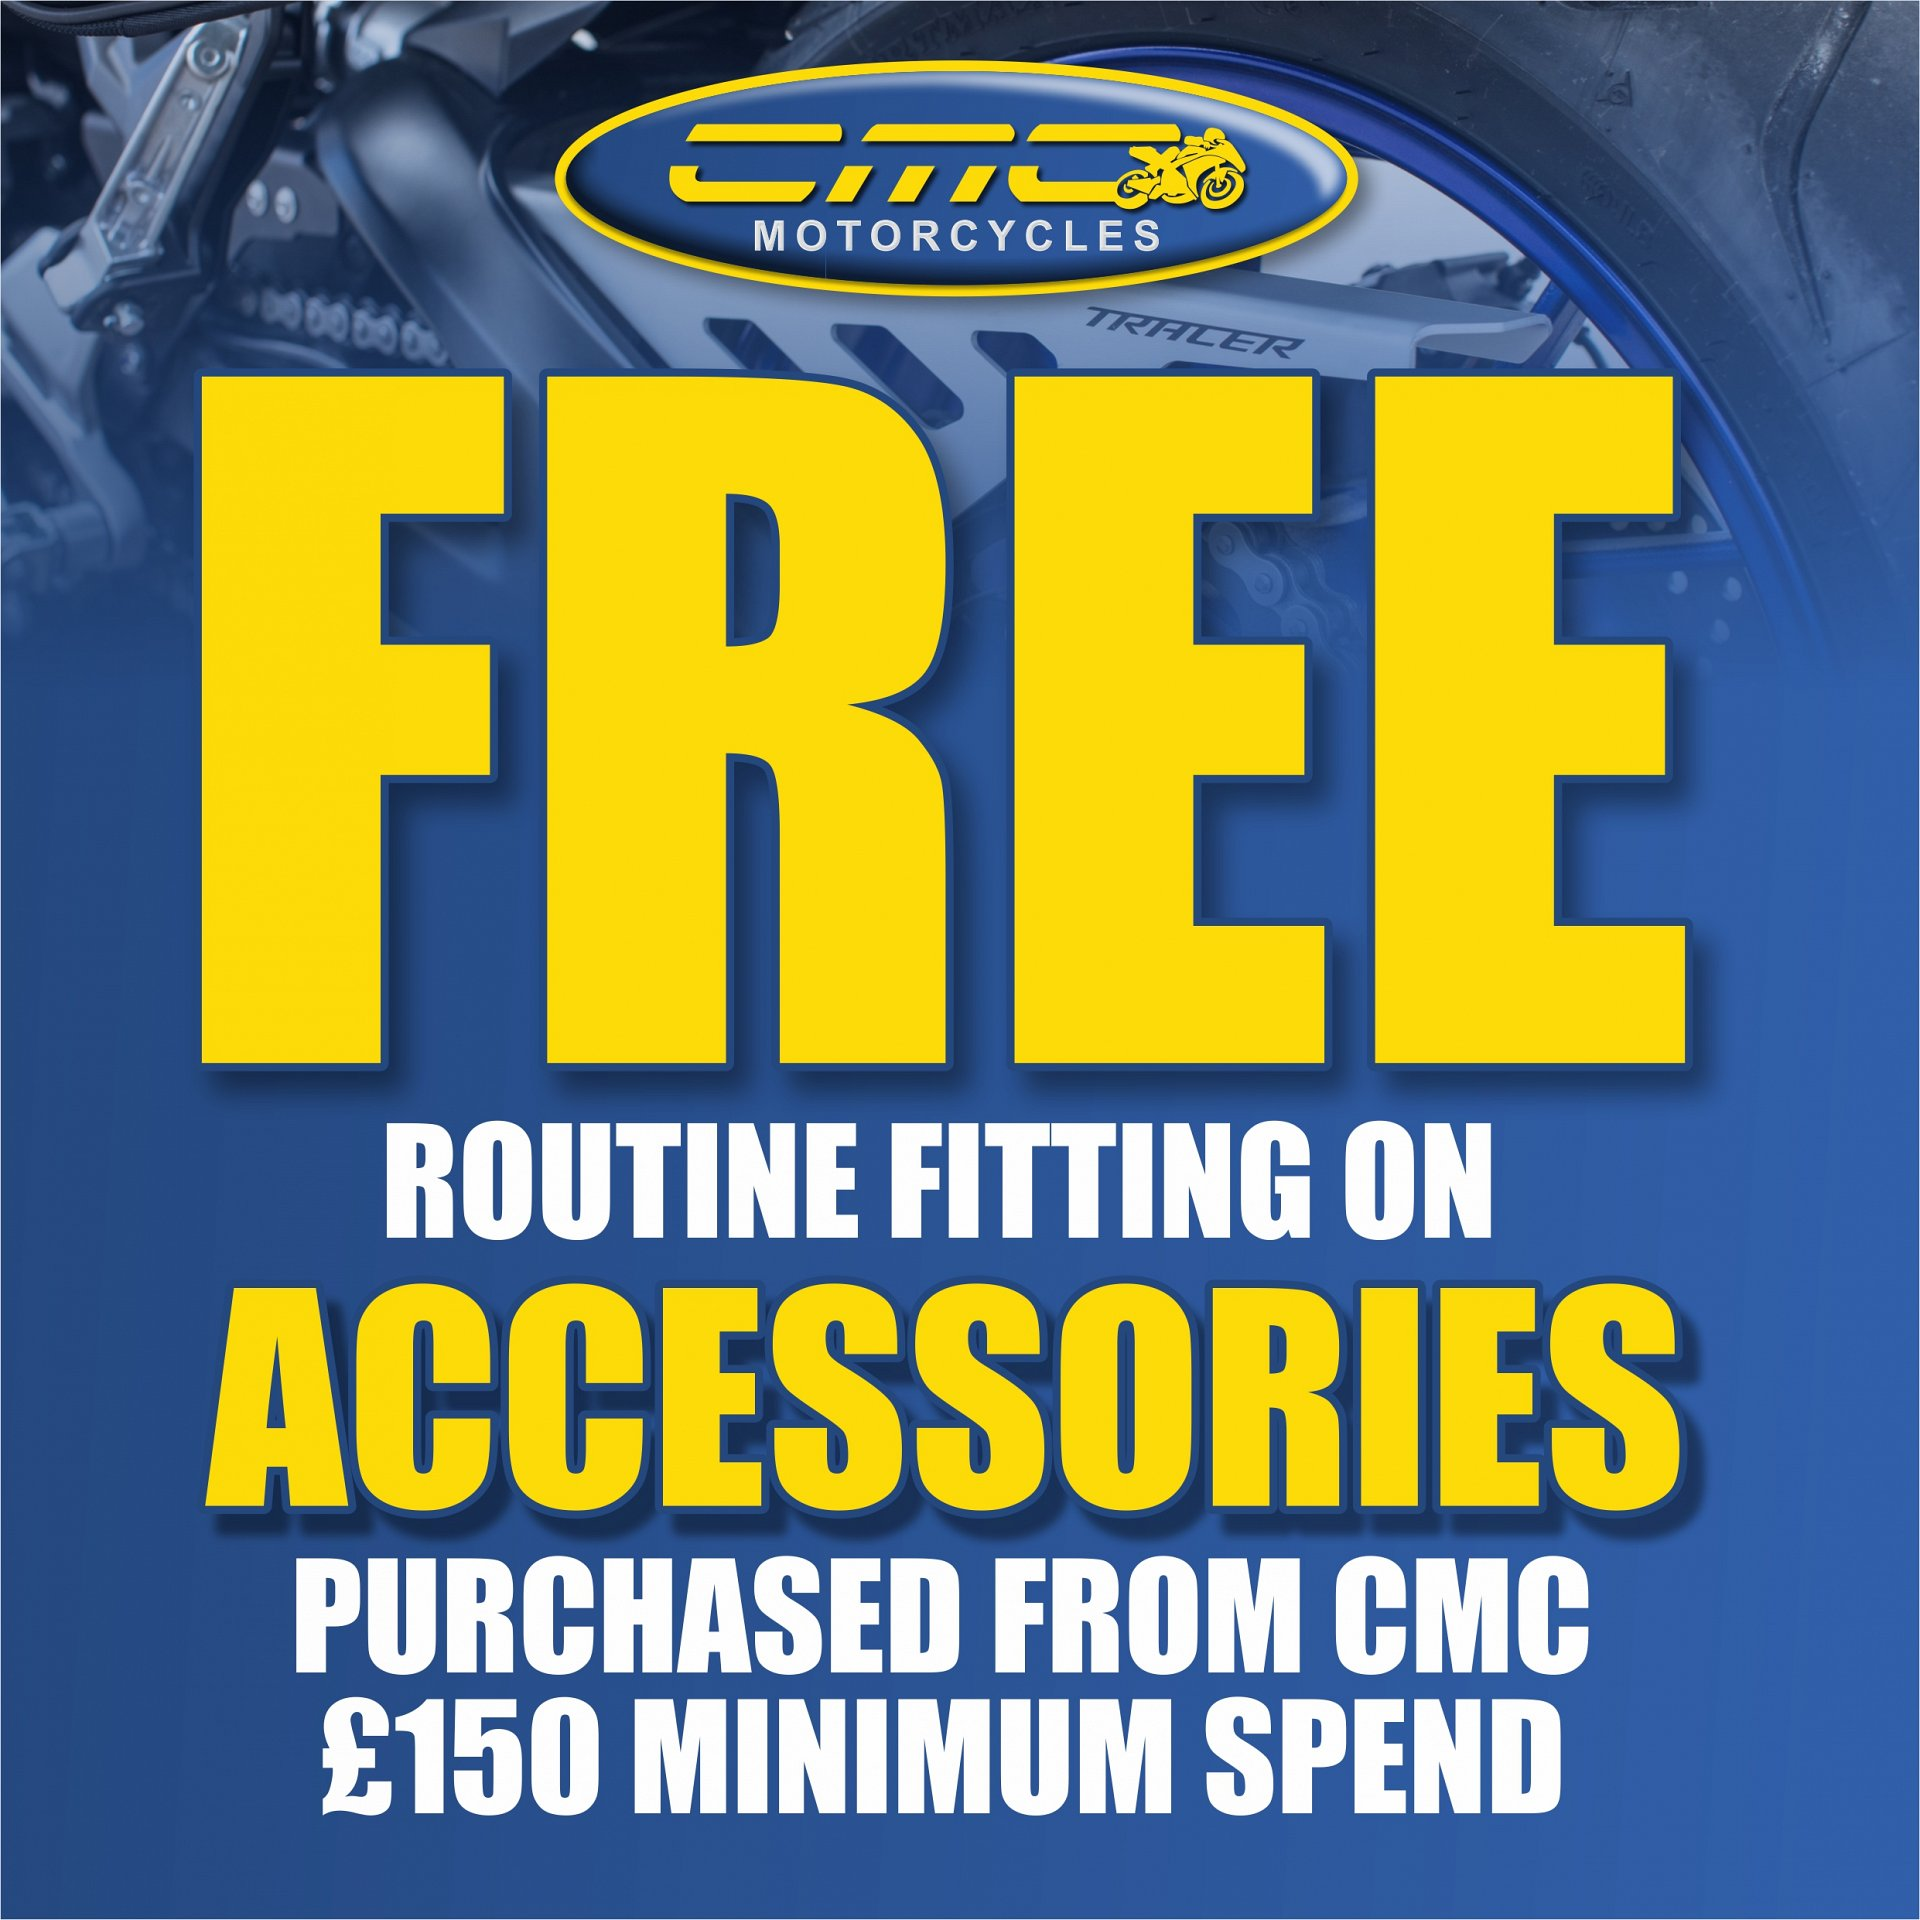 Buy any accessories over £150 and get routine fitting for free!